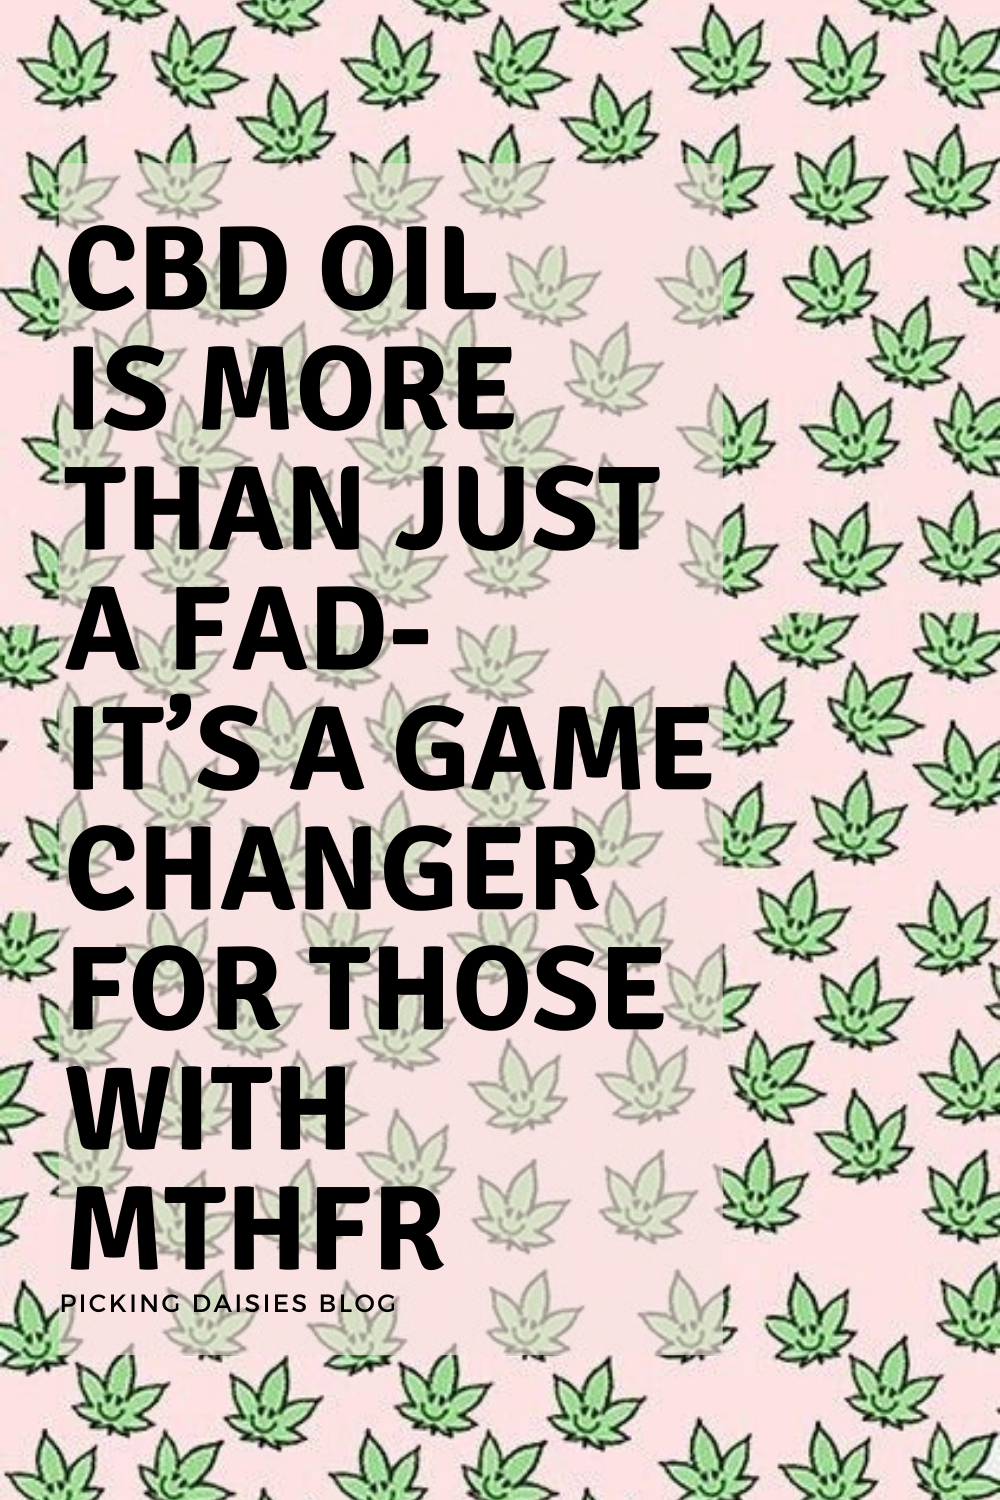 CBD OIL IS MORE THAN JUST A FAD- IT'S A GAME CHANGER FOR THOSE WITH MTHFR